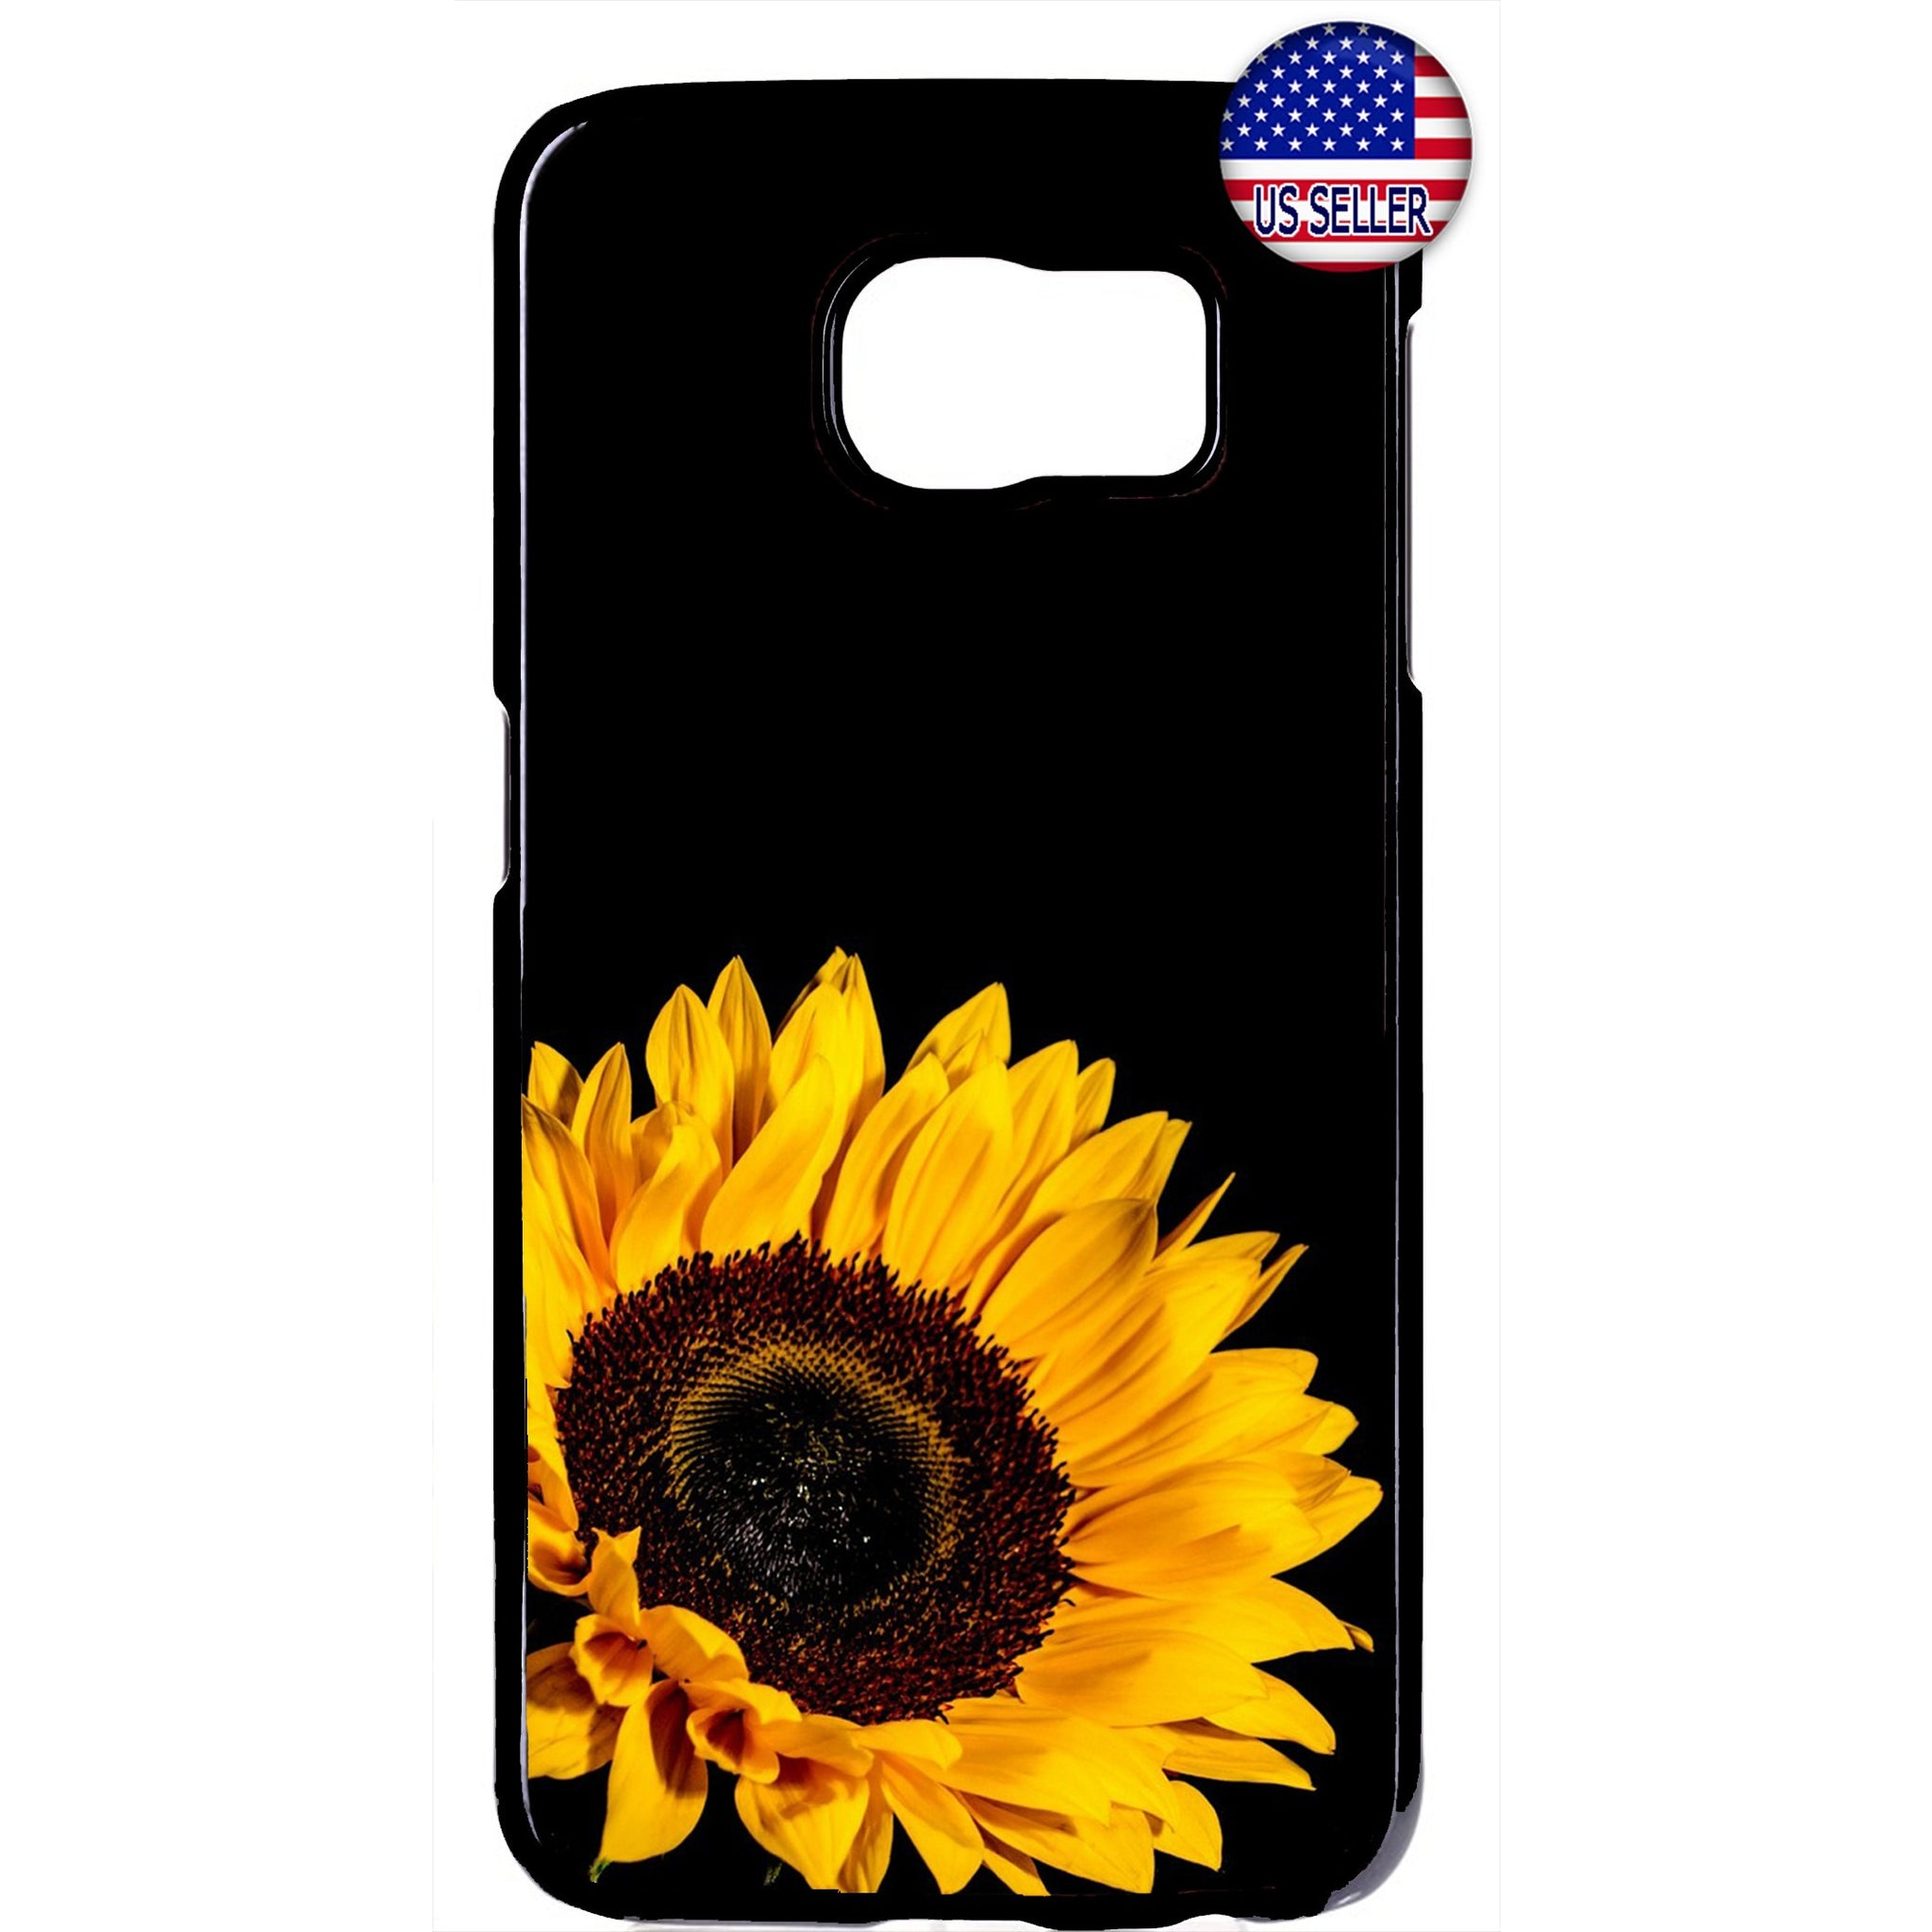 Sunflower Yellow Black Garden Rubber Case Cover For Samsung Galaxy